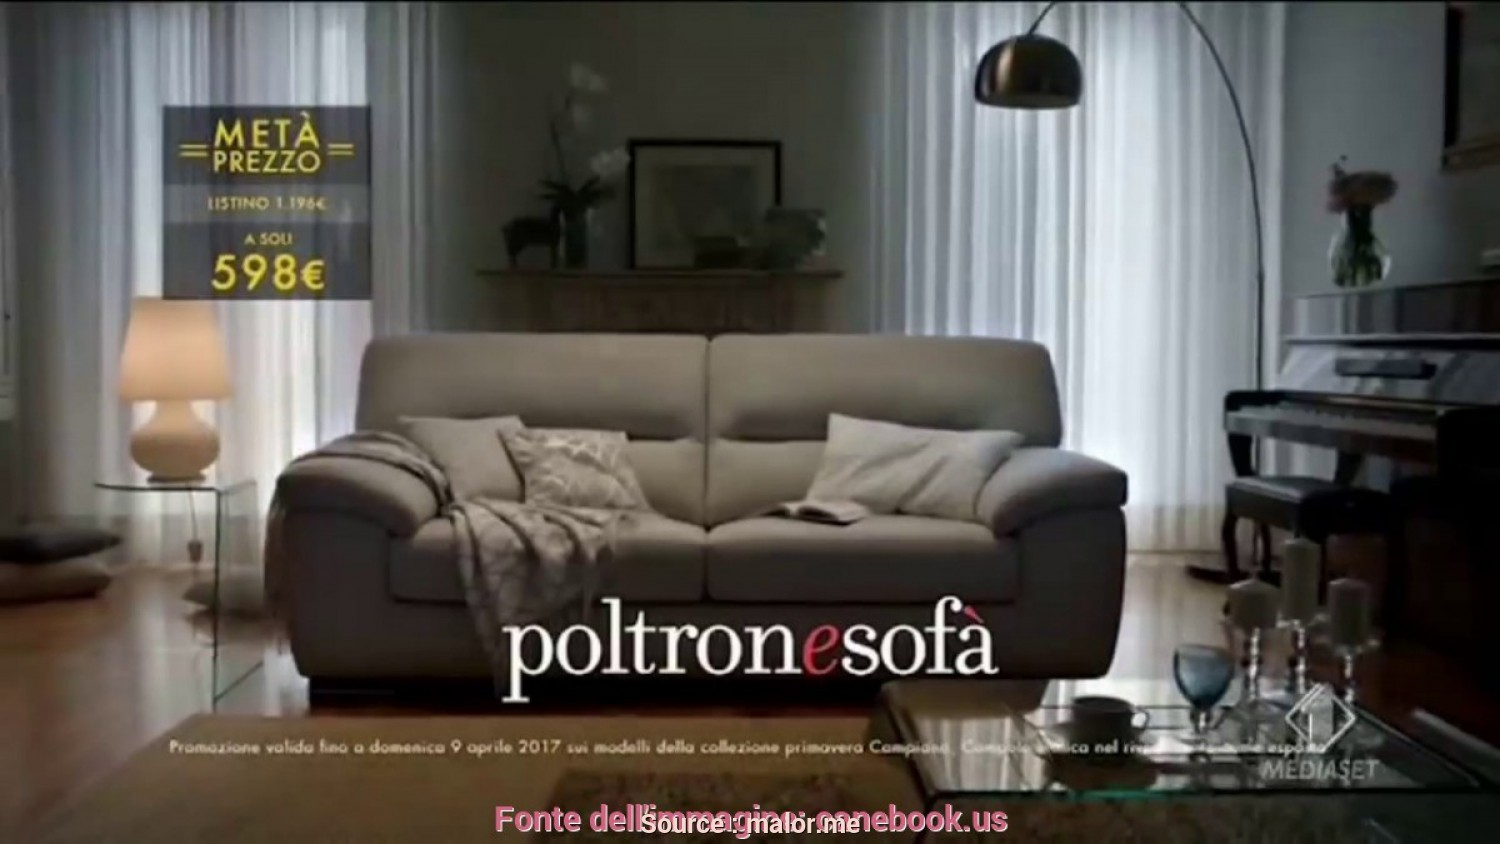 Superiore 5 poltronesof modello baricella jake vintage for Poltrone e sofa divani in pelle